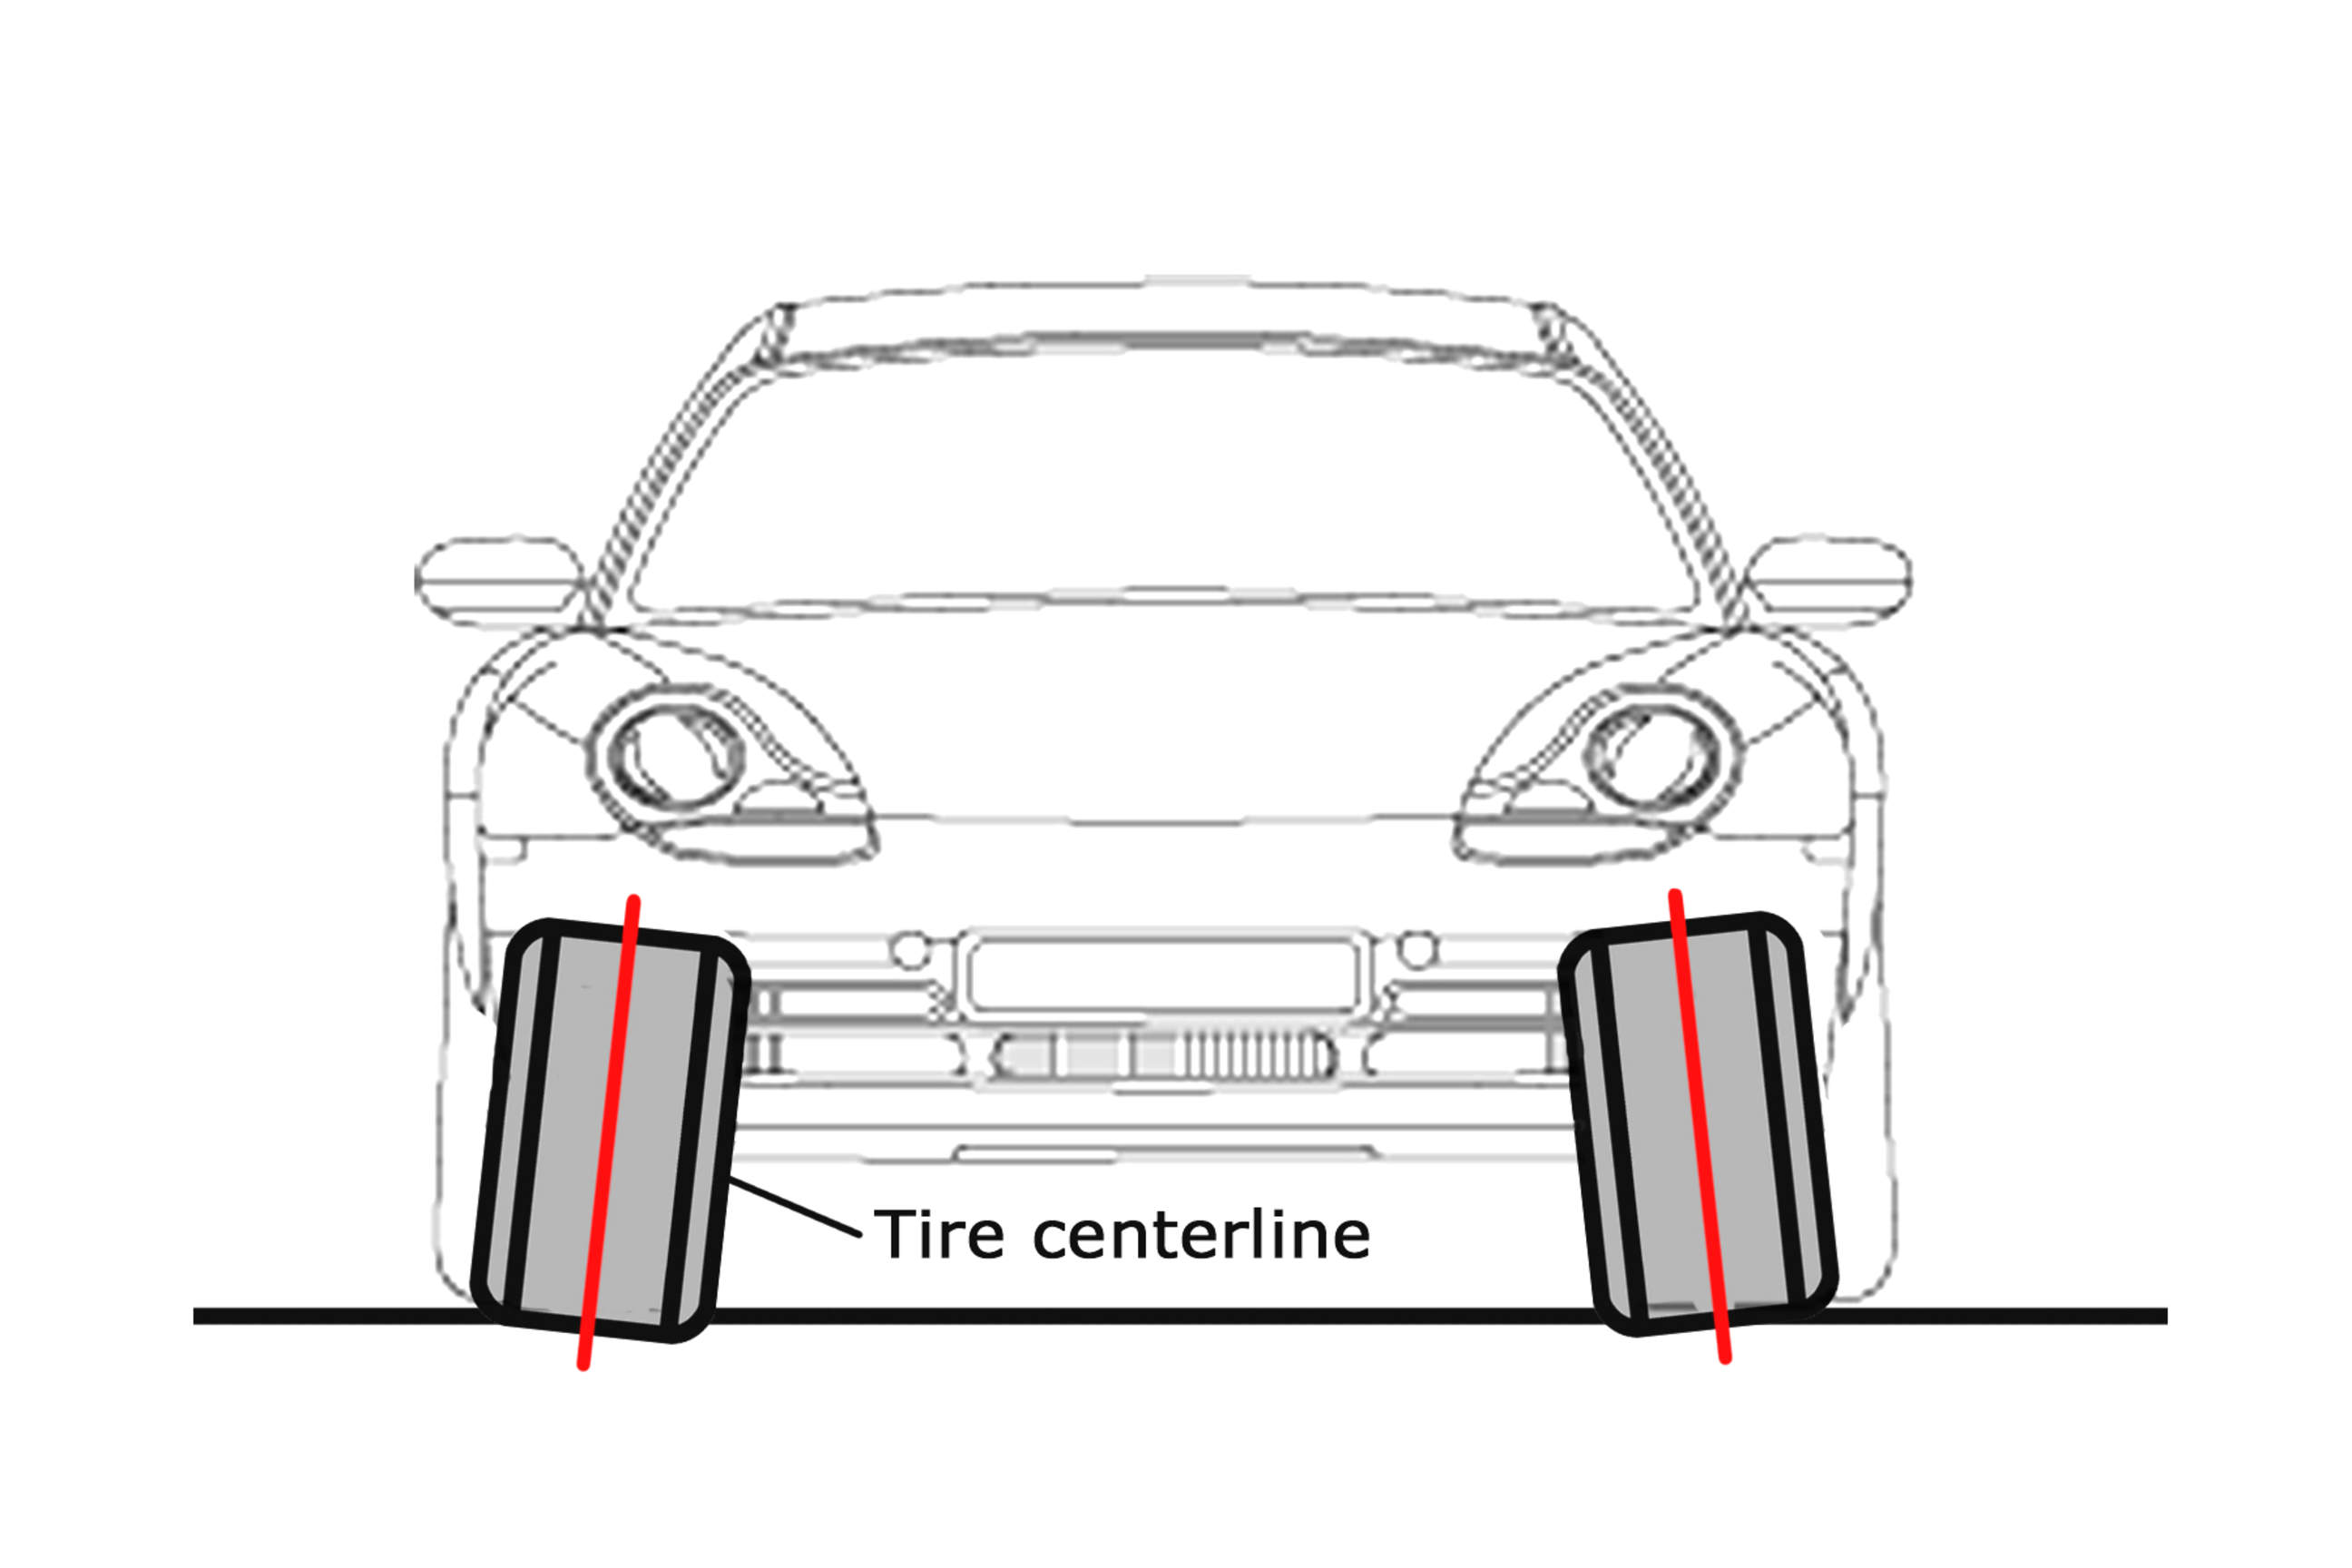 porsche wiring diagram for 911 carrera 2 and 4 1998